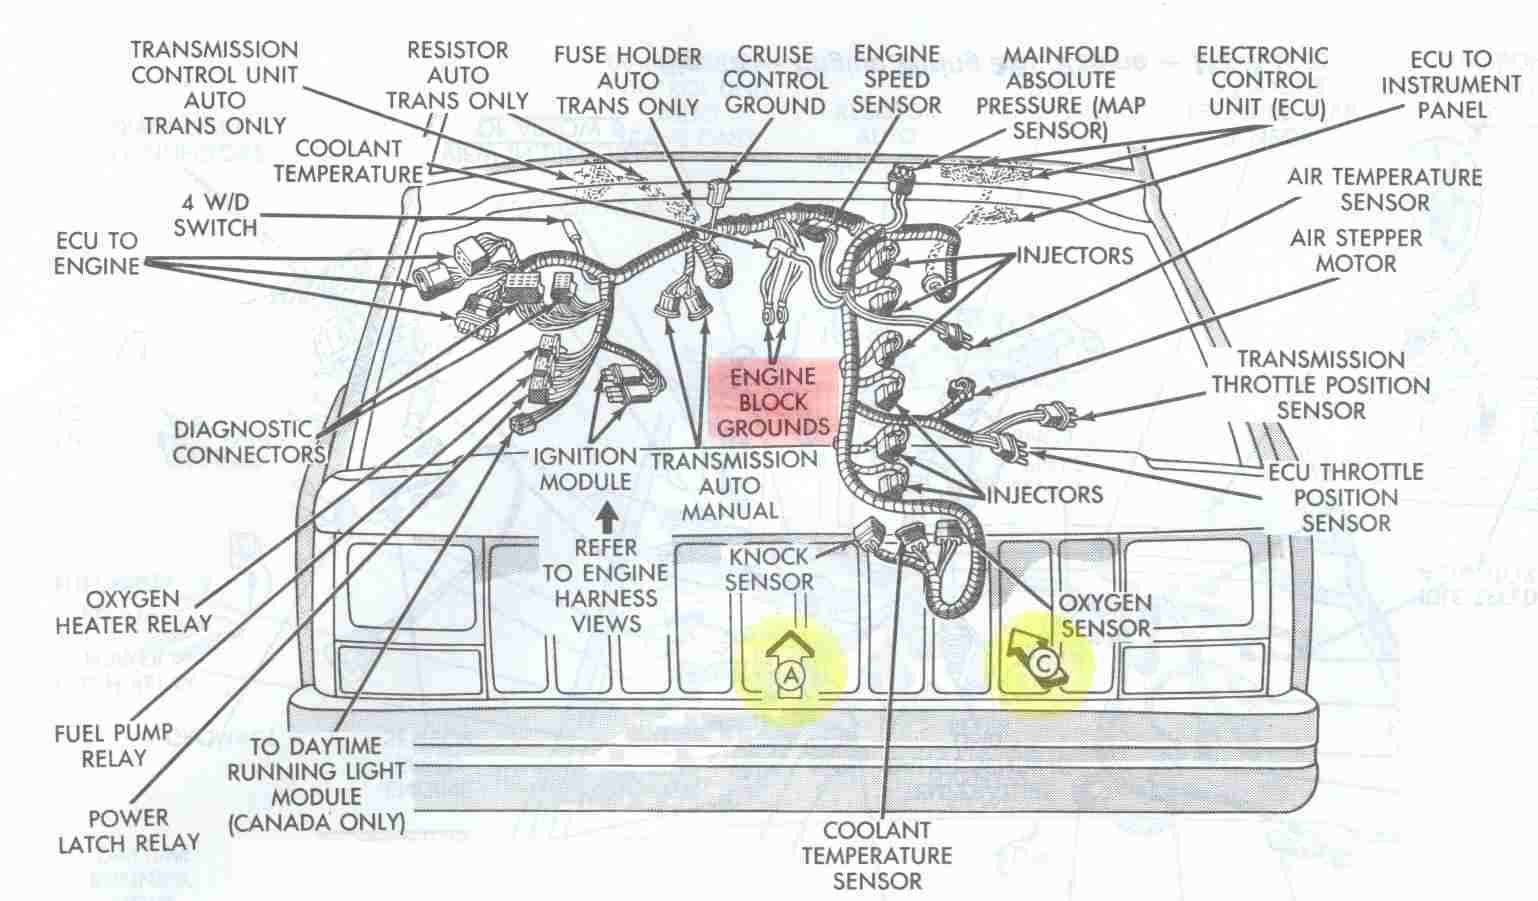 jeep wj grand cherokee radio wiring diagram jeep wrangler engine belt diagram | online wiring diagram jeep wj ground diagram